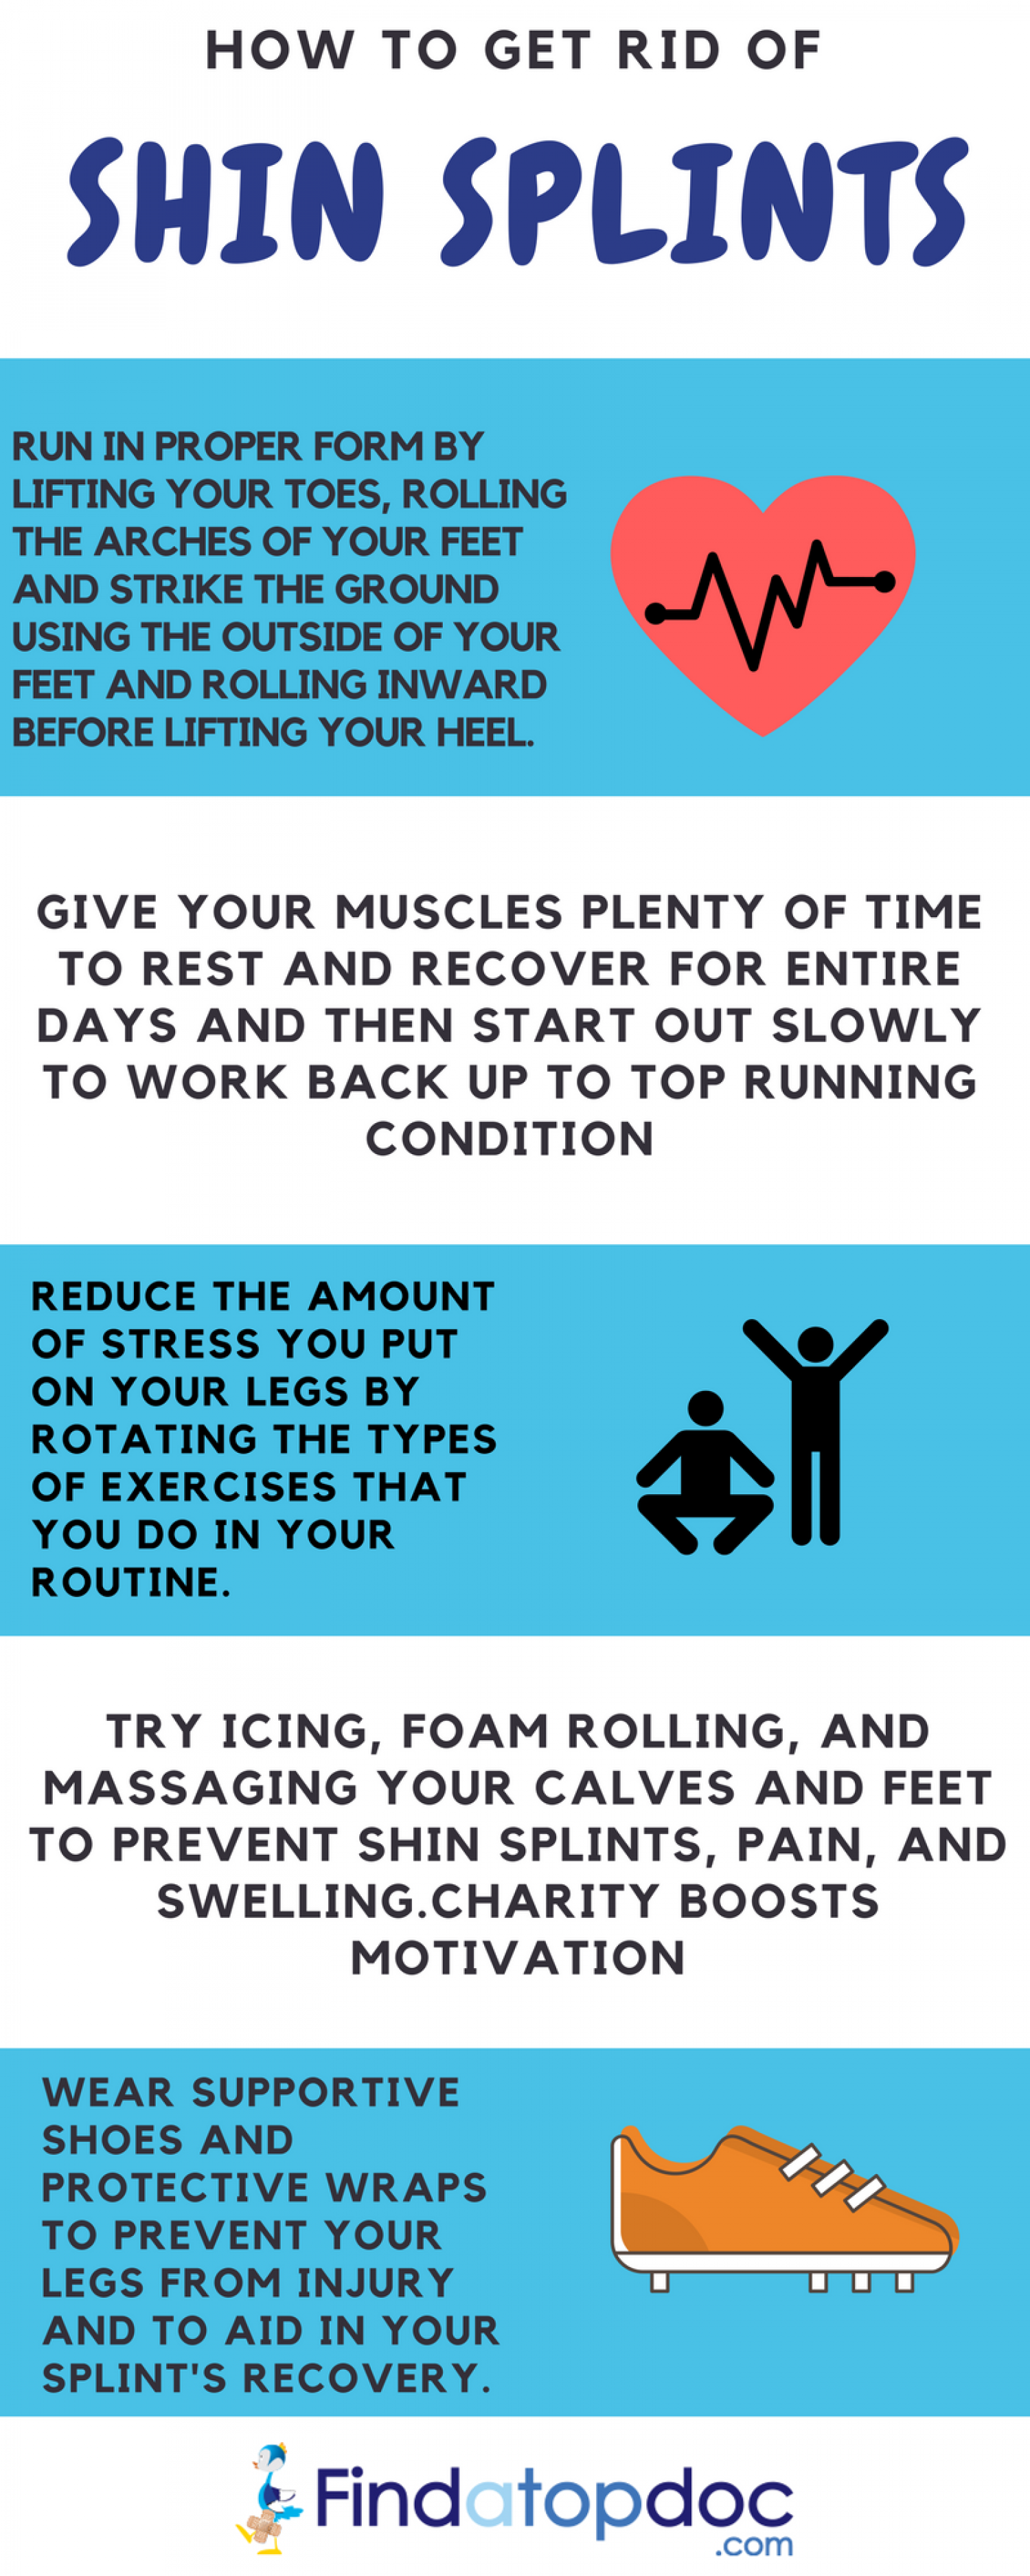 How to Get Rid of Shin Splints Infographic